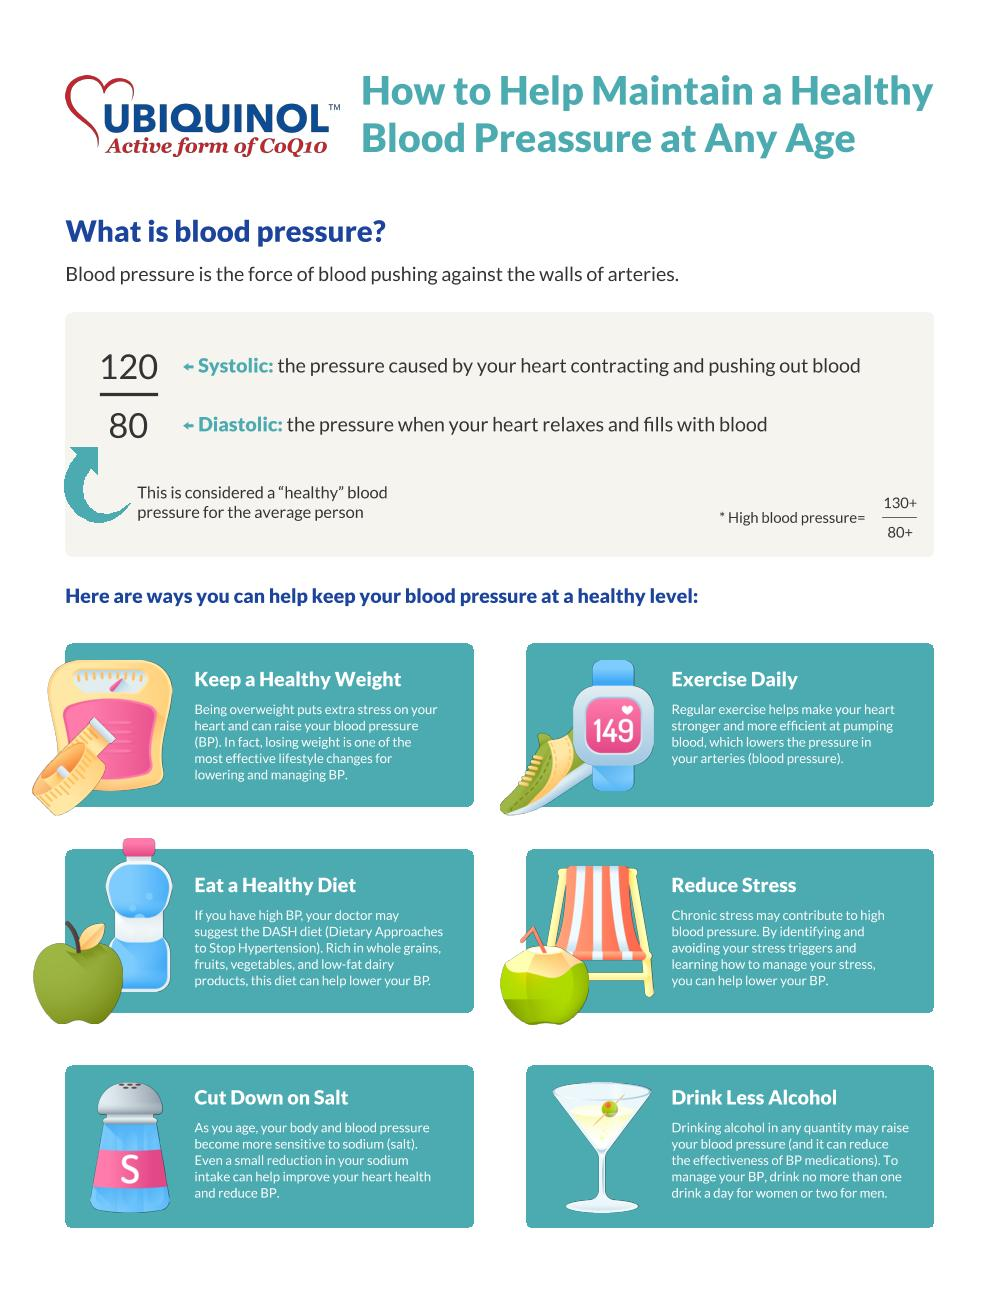 Ubiquinol's guide to keeping a healthy blood pressure